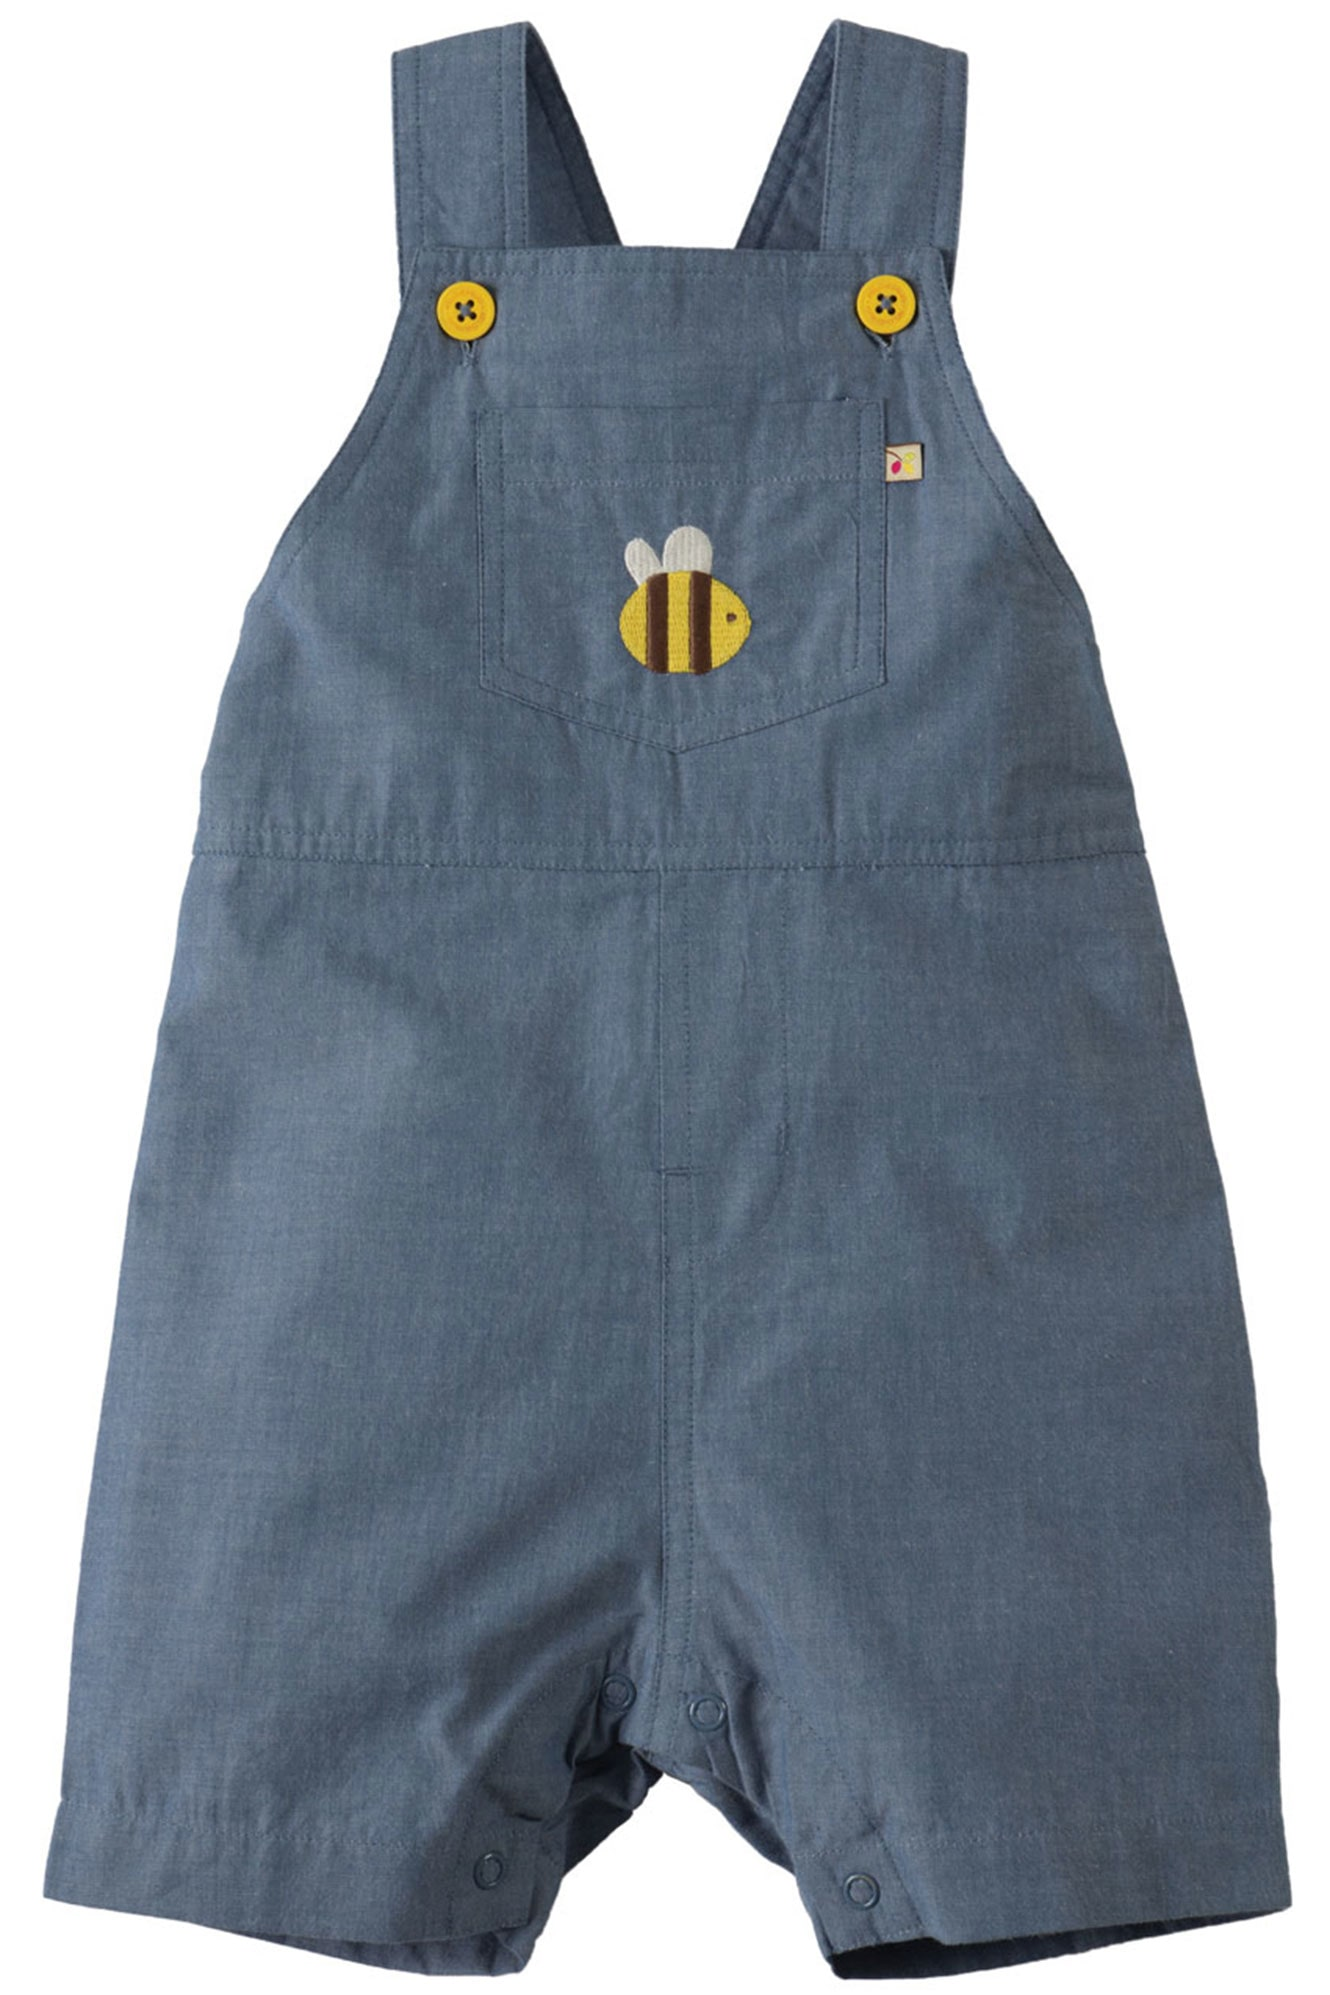 Stockists of Durgan Dungaree